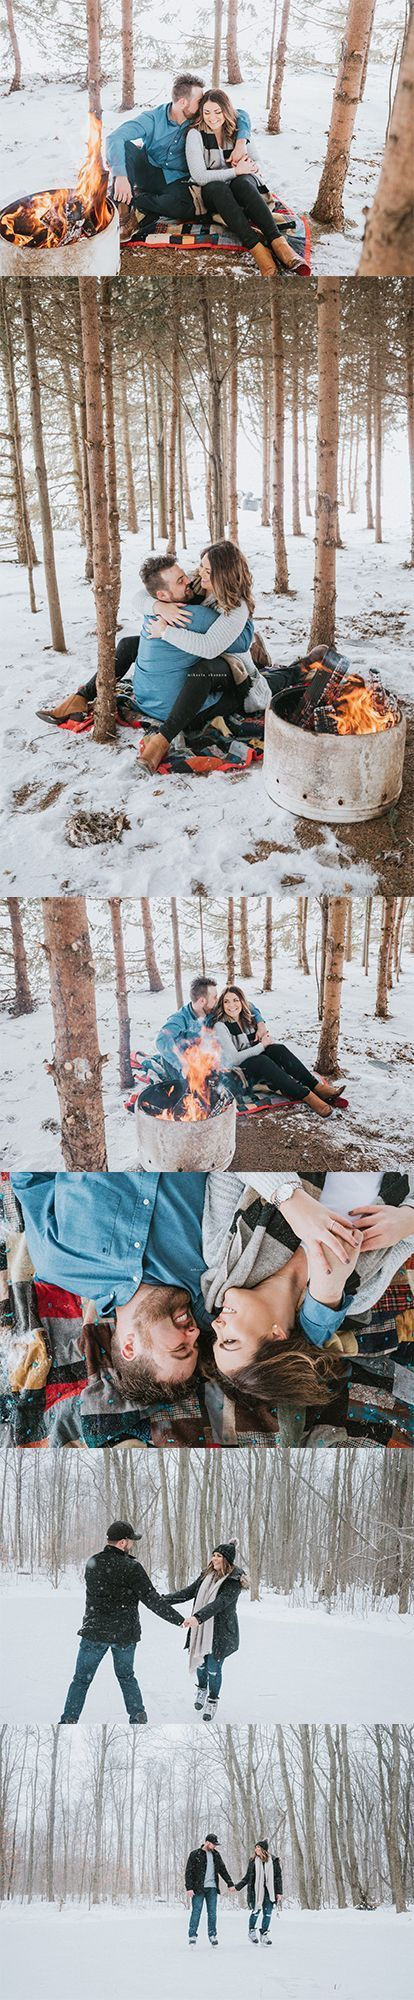 Photo of Winter bonfire  outdoor skating engagement session. #winter #engagement #engage …